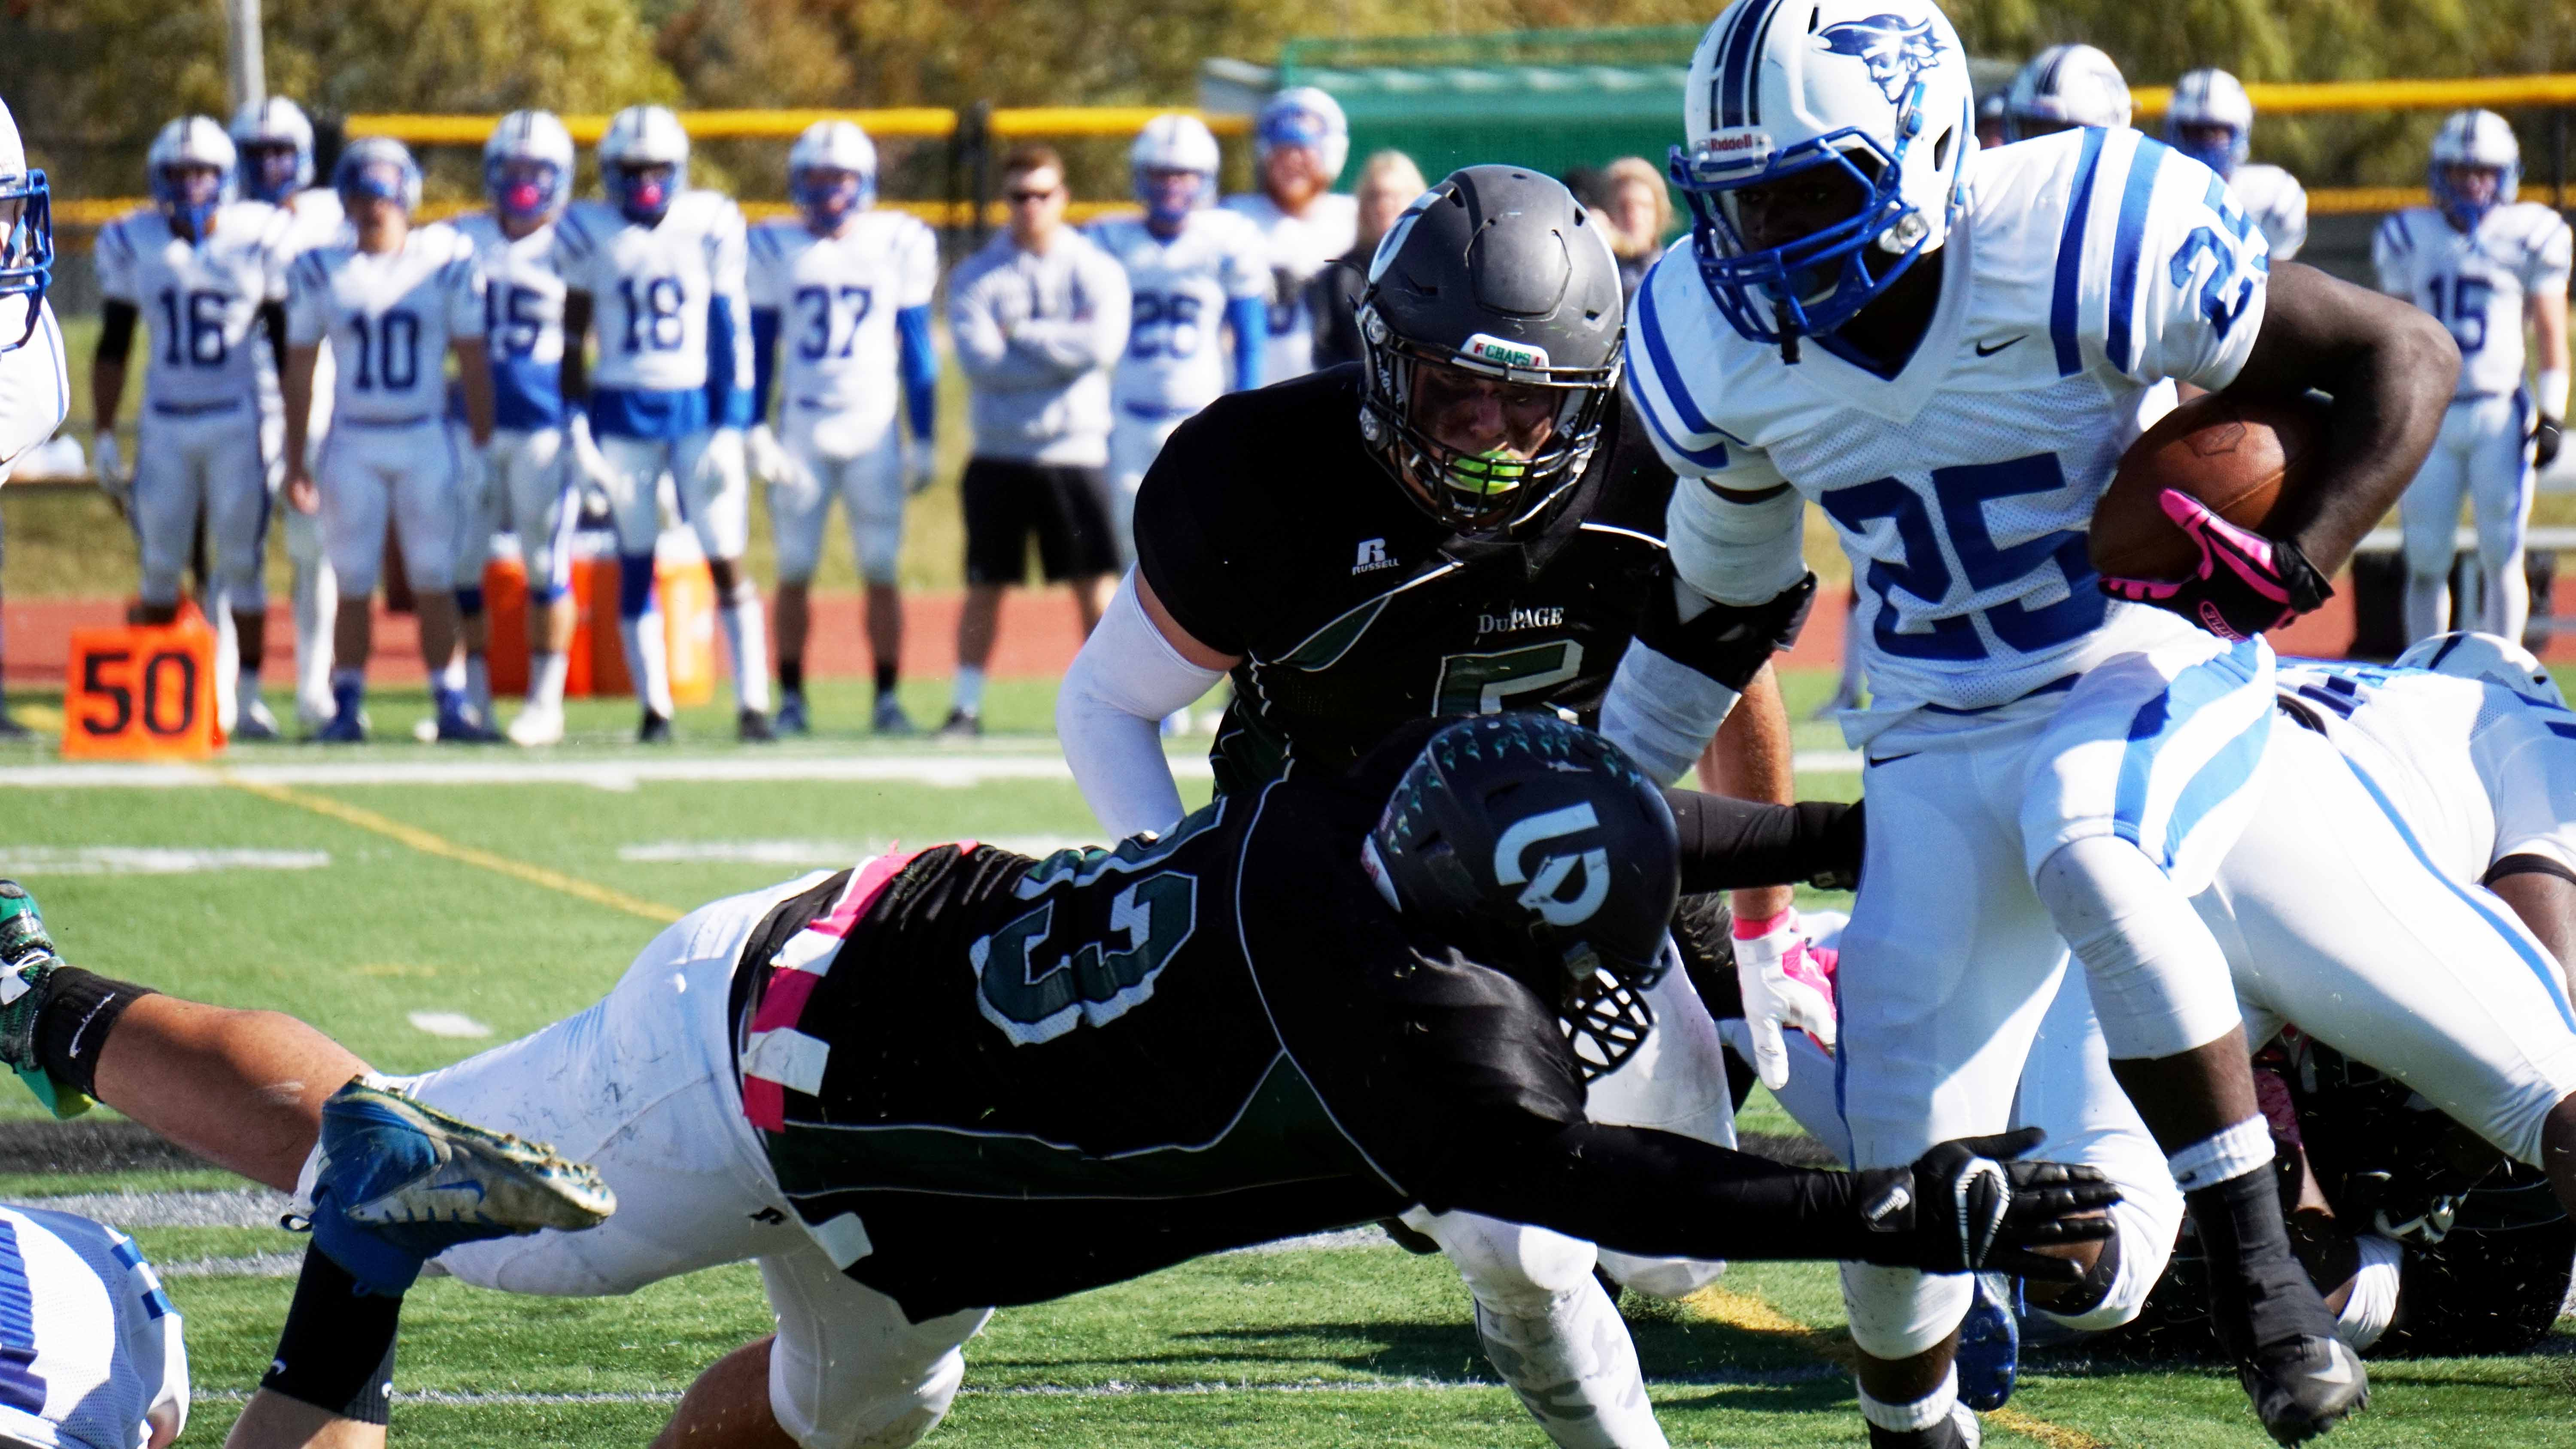 Chaparral Defensive Back Mitch Boals tries to take down Iowa Western Reiver Running Back Jon Nzombo at the College of DuPage Homecoming match on Oct. 17.